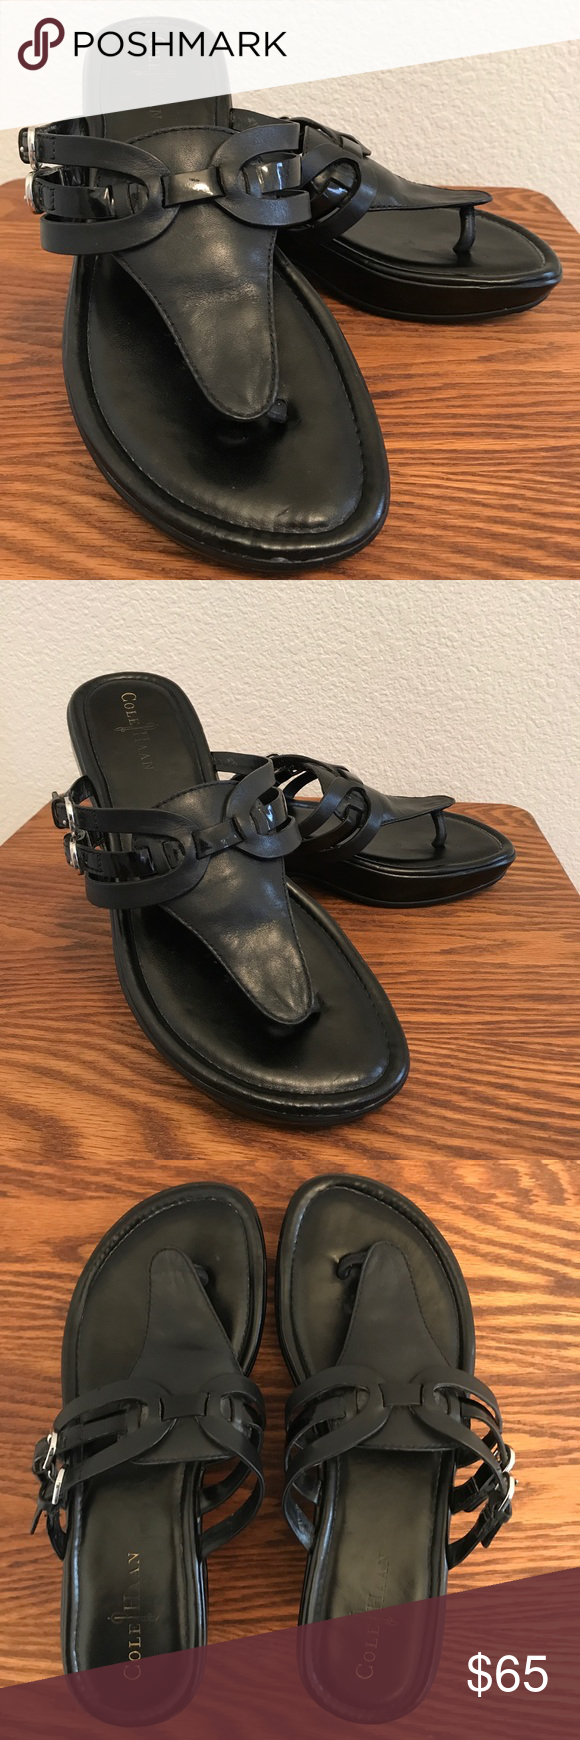 "820033266eb Cole Haan Leather Thong ""Air Melissa"" Sandals 8 M Really lovely"